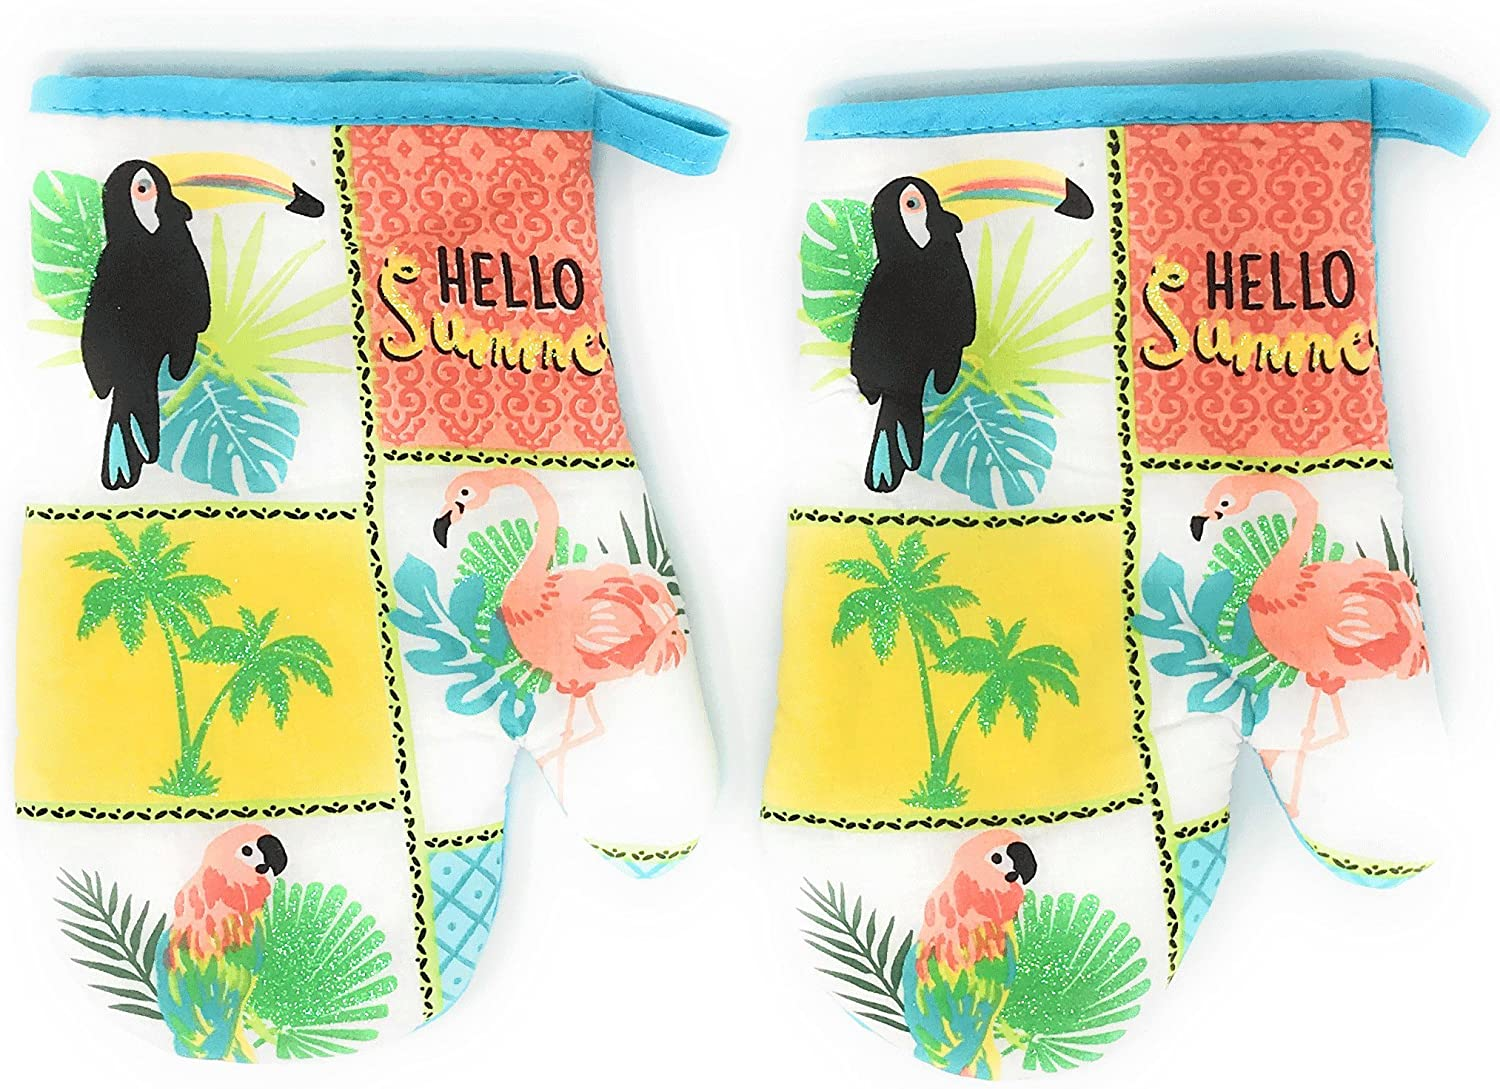 Coastal Living Seascapes Cotton Oven Mitt Set, Set of 2 (Parrots & Flamingo)